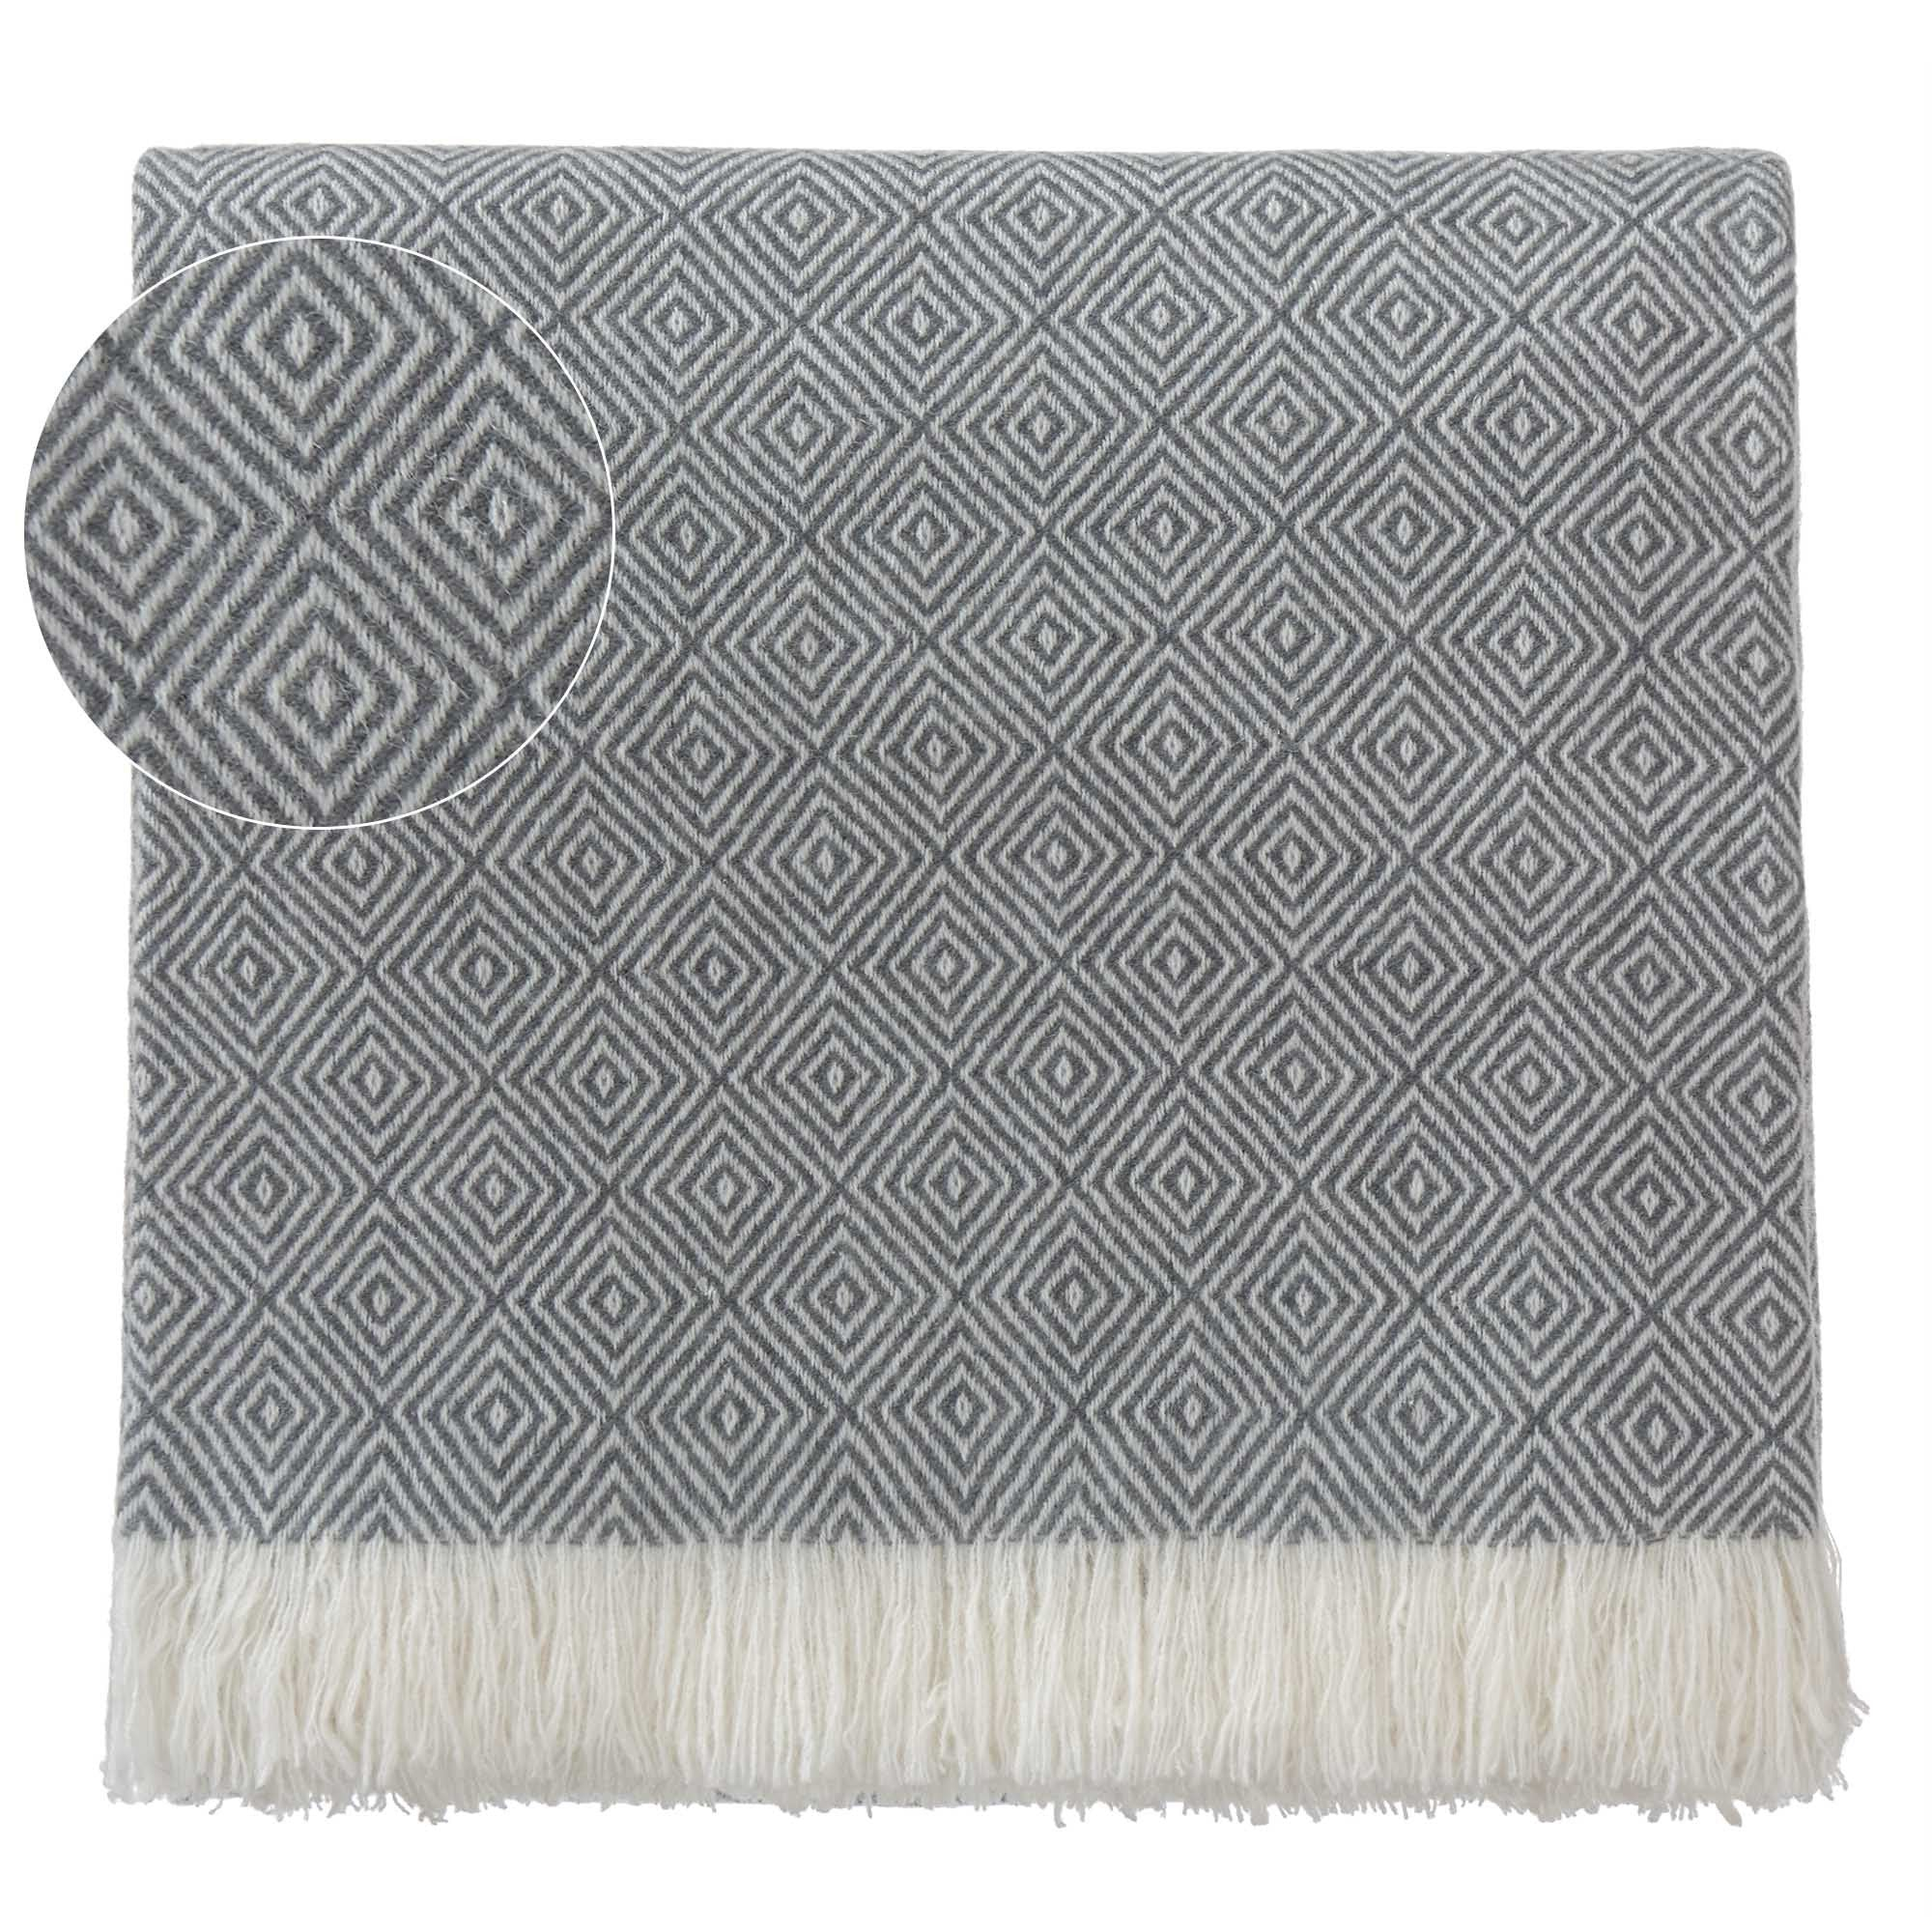 Uyuni blanket, charcoal & cream, 100% cashmere wool